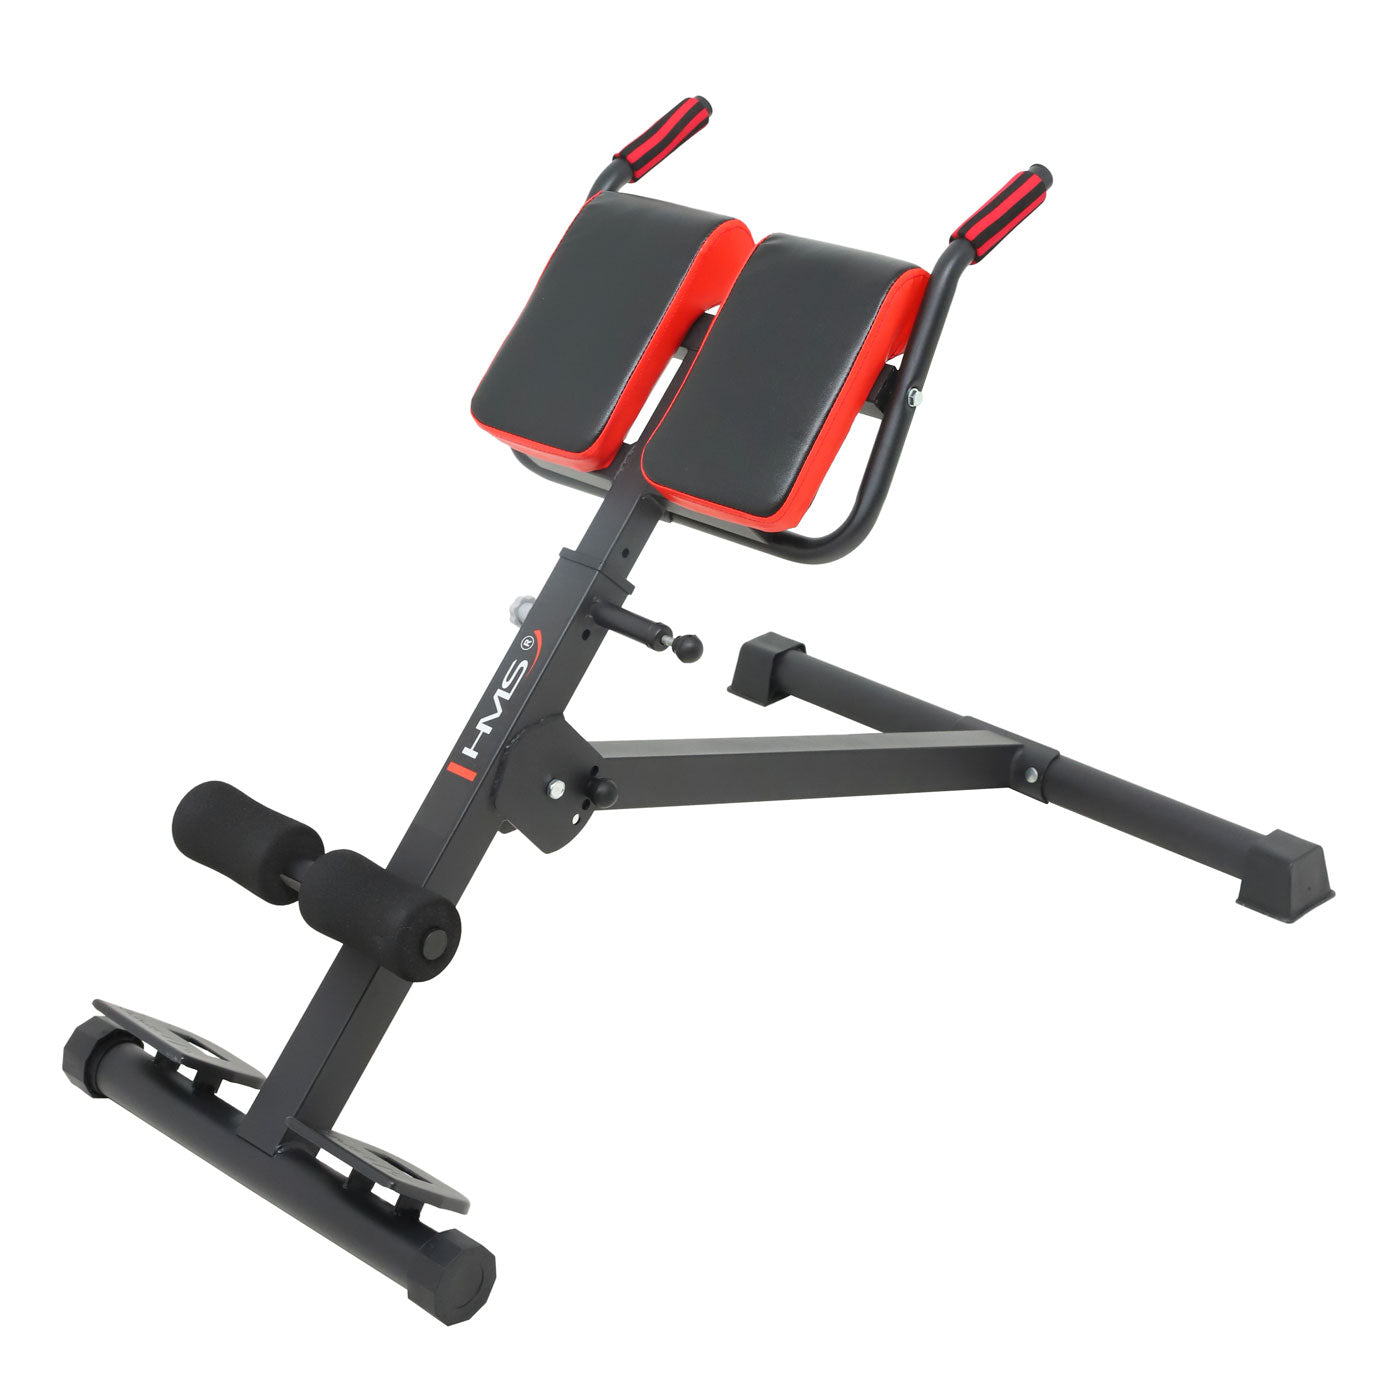 Adjustable Roman Chair Back Hyper Bench for Ab Sit up Bench, Decline Bench